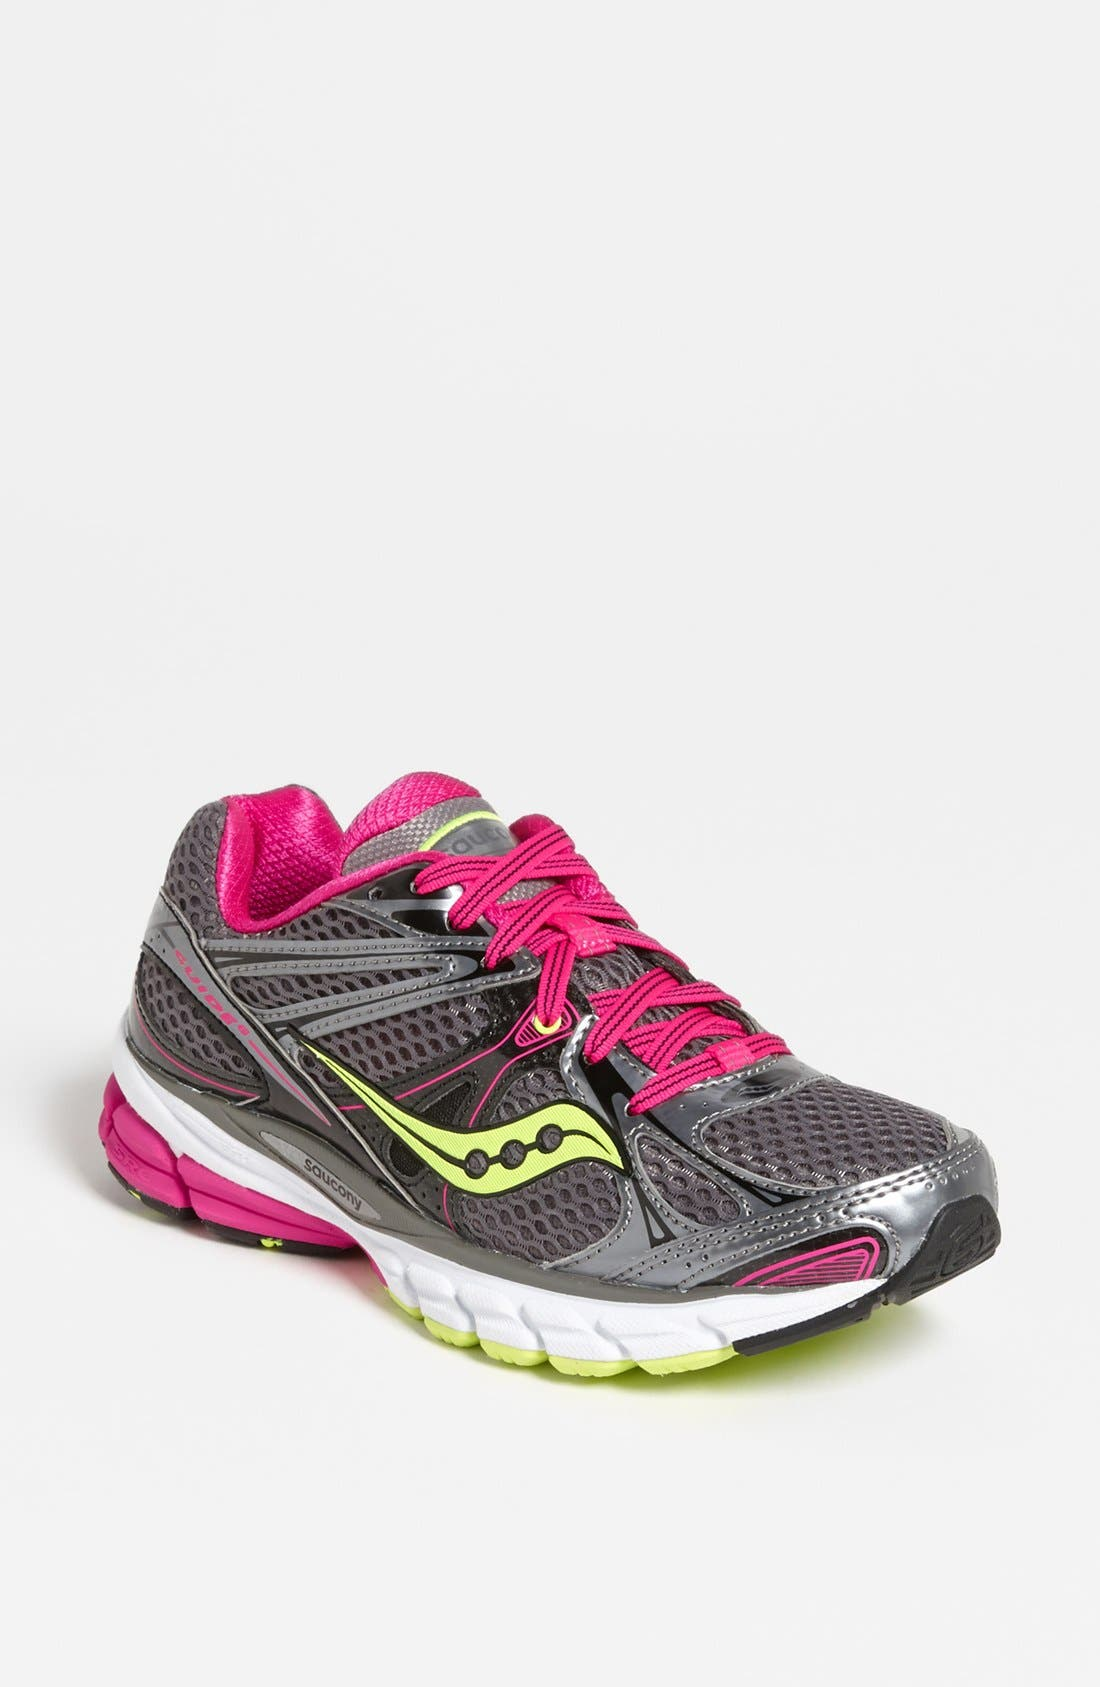 Alternate Image 1 Selected - Saucony 'Guide 6' Running Shoe (Women)